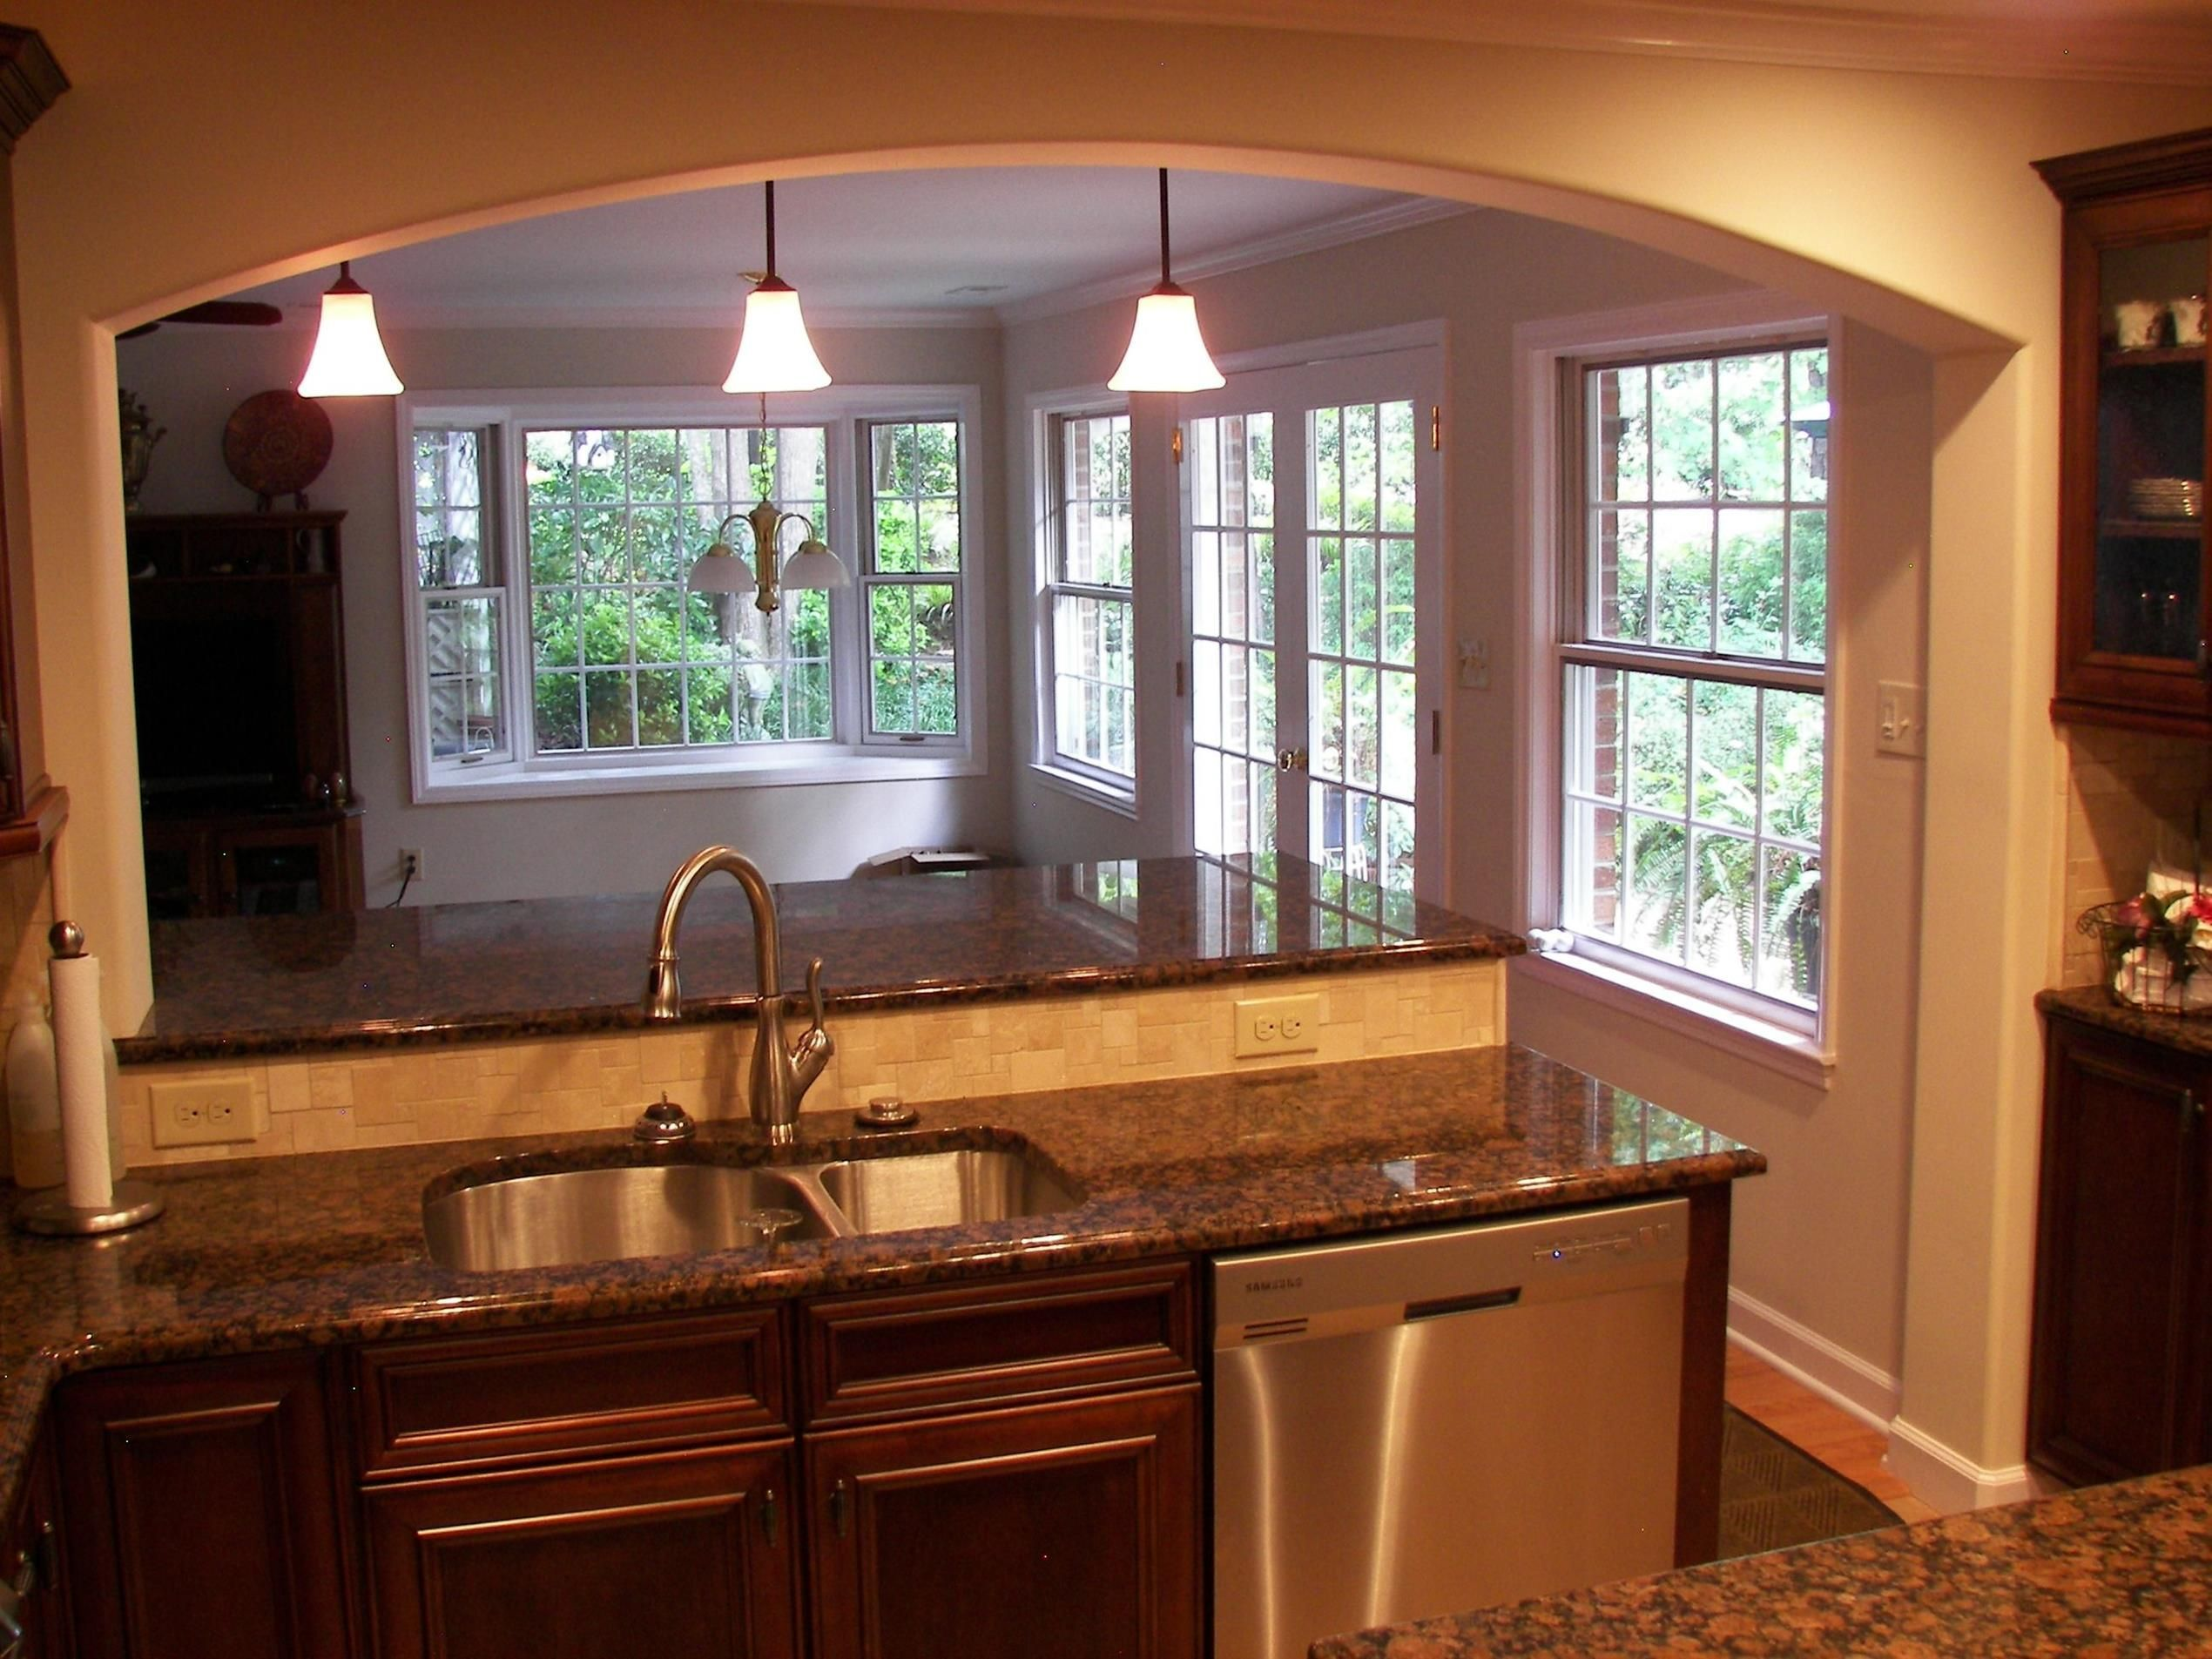 Kitchen Remodeling Yonkers Ny Bathroomremodelyonkersny Kitchencabinetsyonkersny Kitchen Remodel Small Kitchen Remodel Kitchen Remodeling Projects